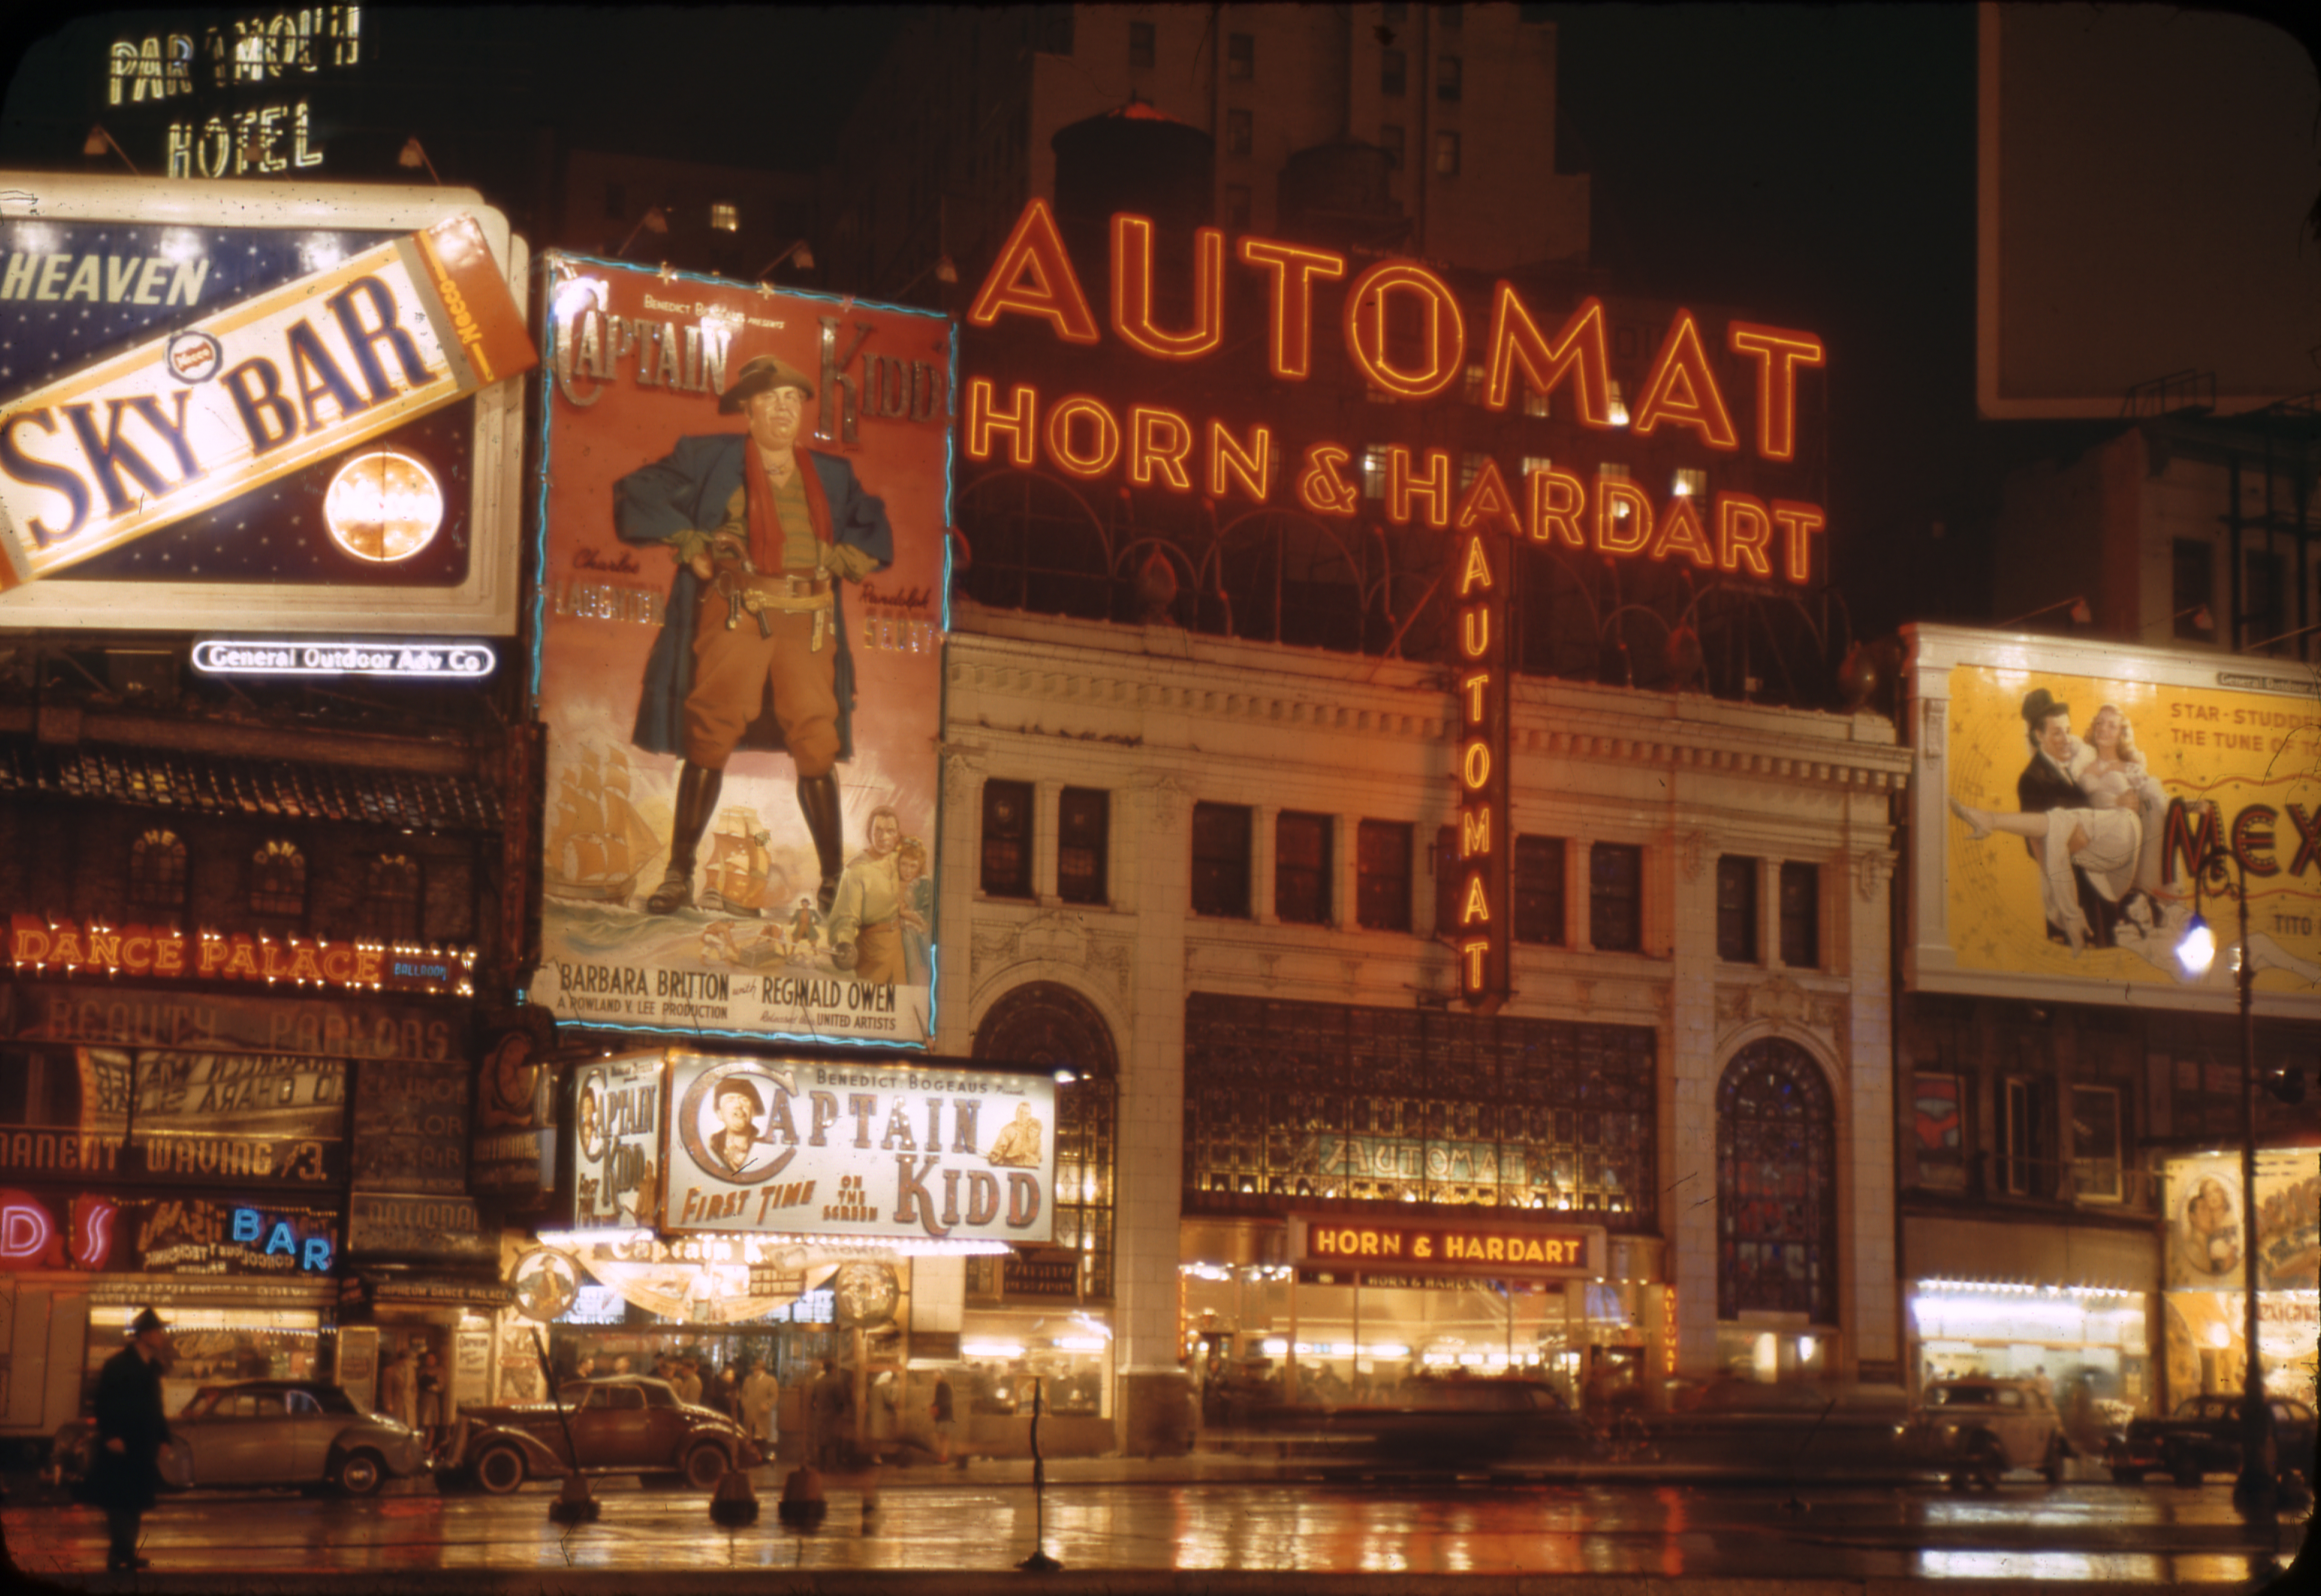 A neon sign advertising a Horn and Hardart automat glows orange in the night in busy Times Square in the 1940s.